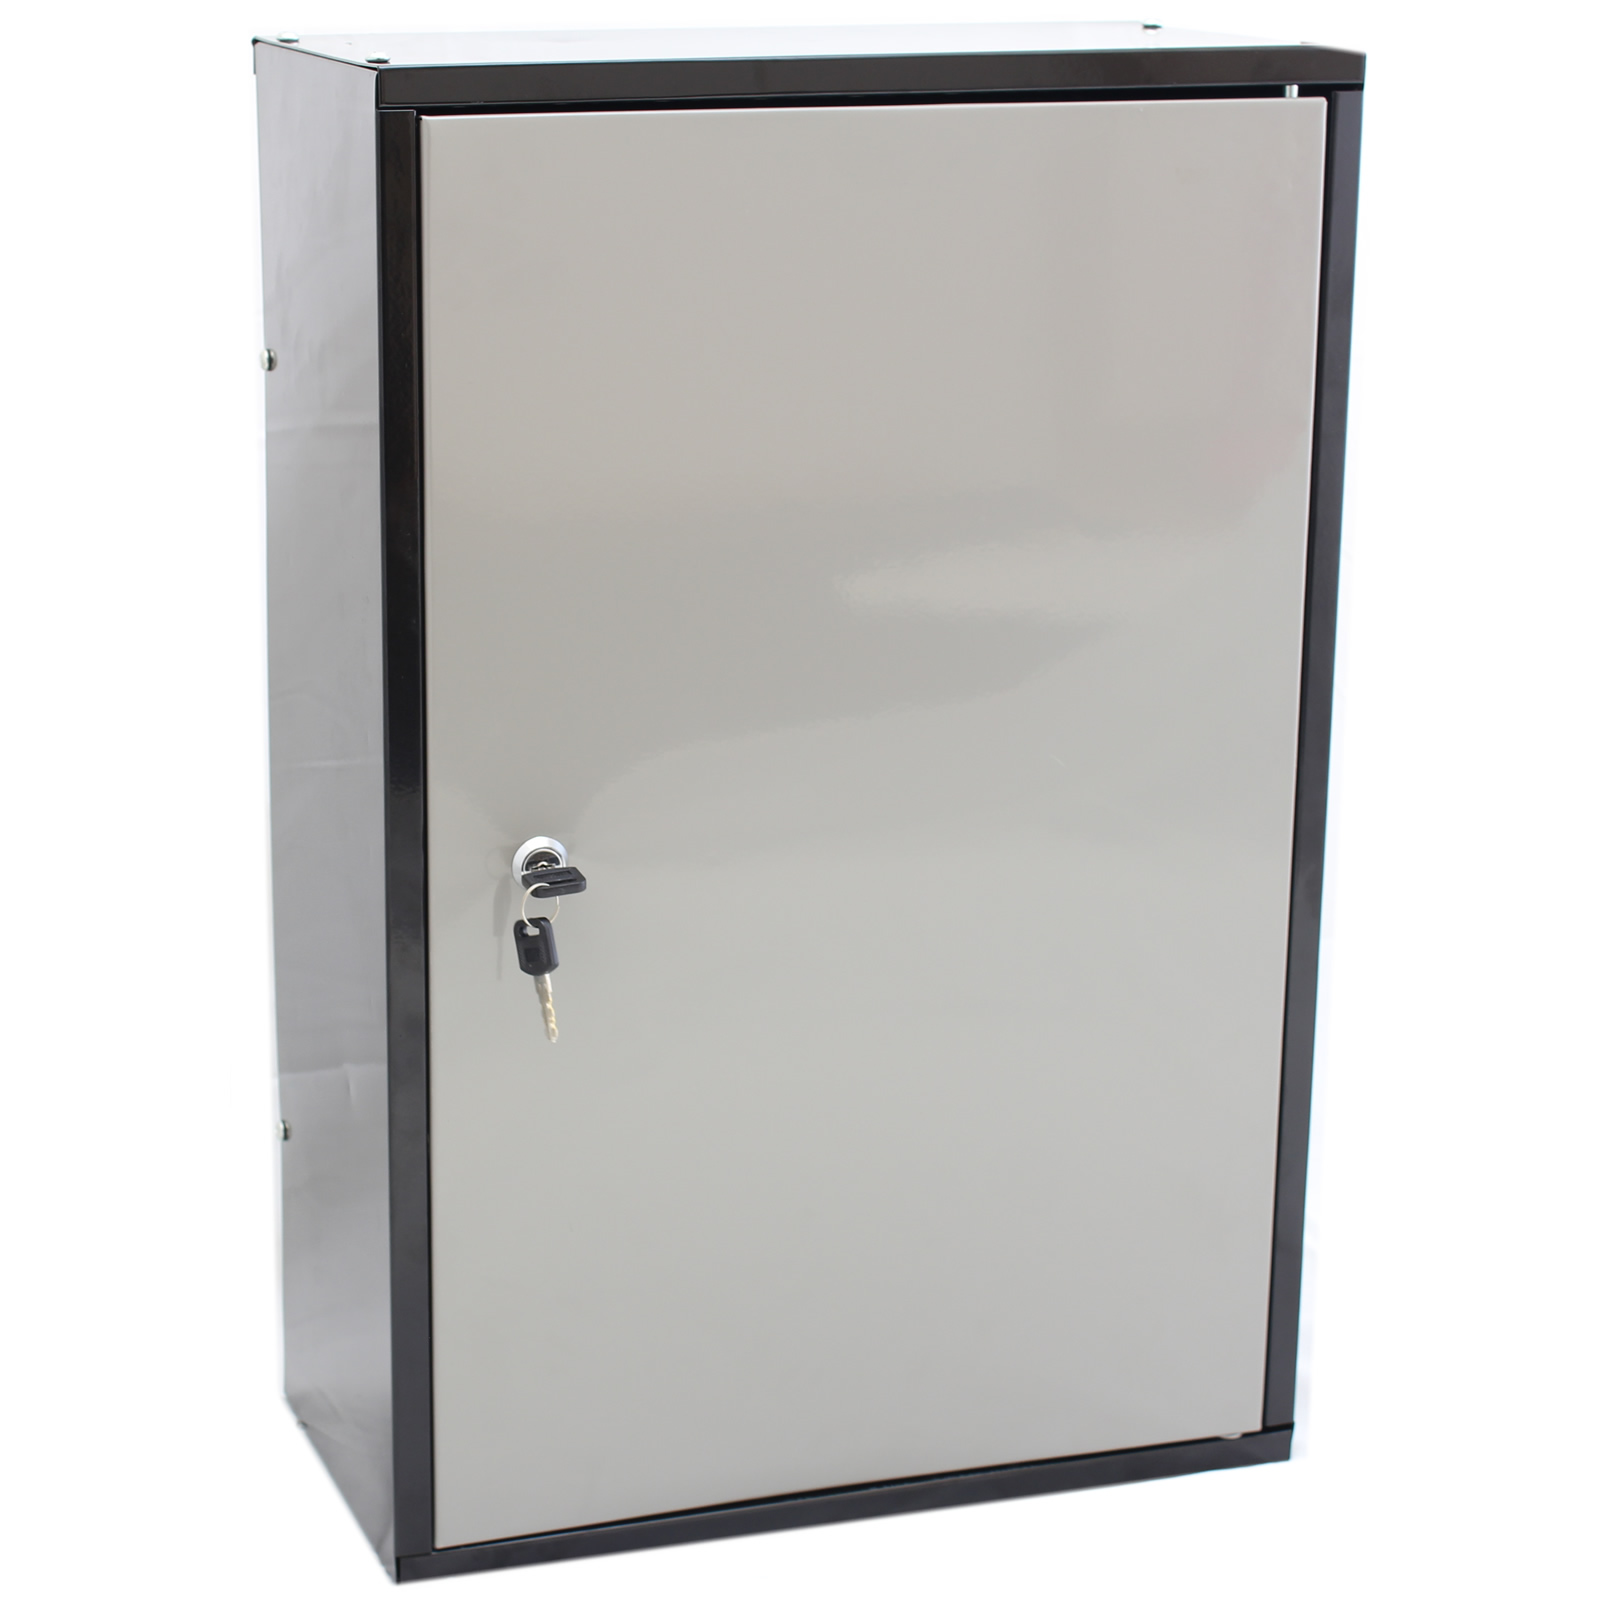 LOCKABLE METAL GARAGE SHED STORAGE CABINET WALL UNIT TOOL PAINT